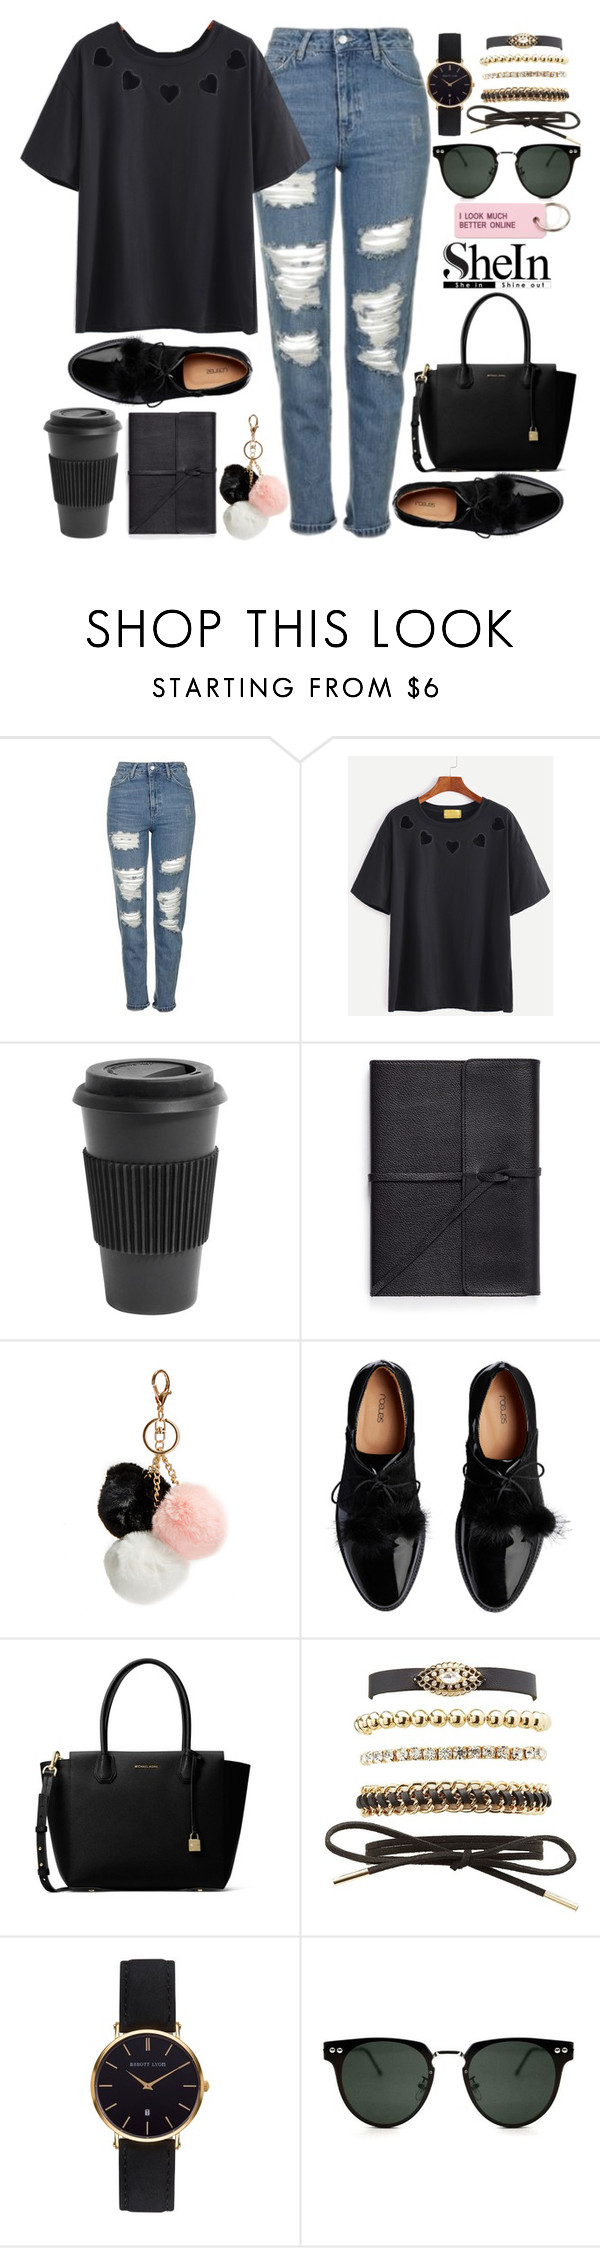 """""""silence"""" by xconstancax ❤ liked on Polyvore featuring Topshop, Homage, Bynd Artisan, GUESS, MICHAEL Michael Kors, Charlotte Russe, Abbott Lyon, Spitfire and Various Projects"""